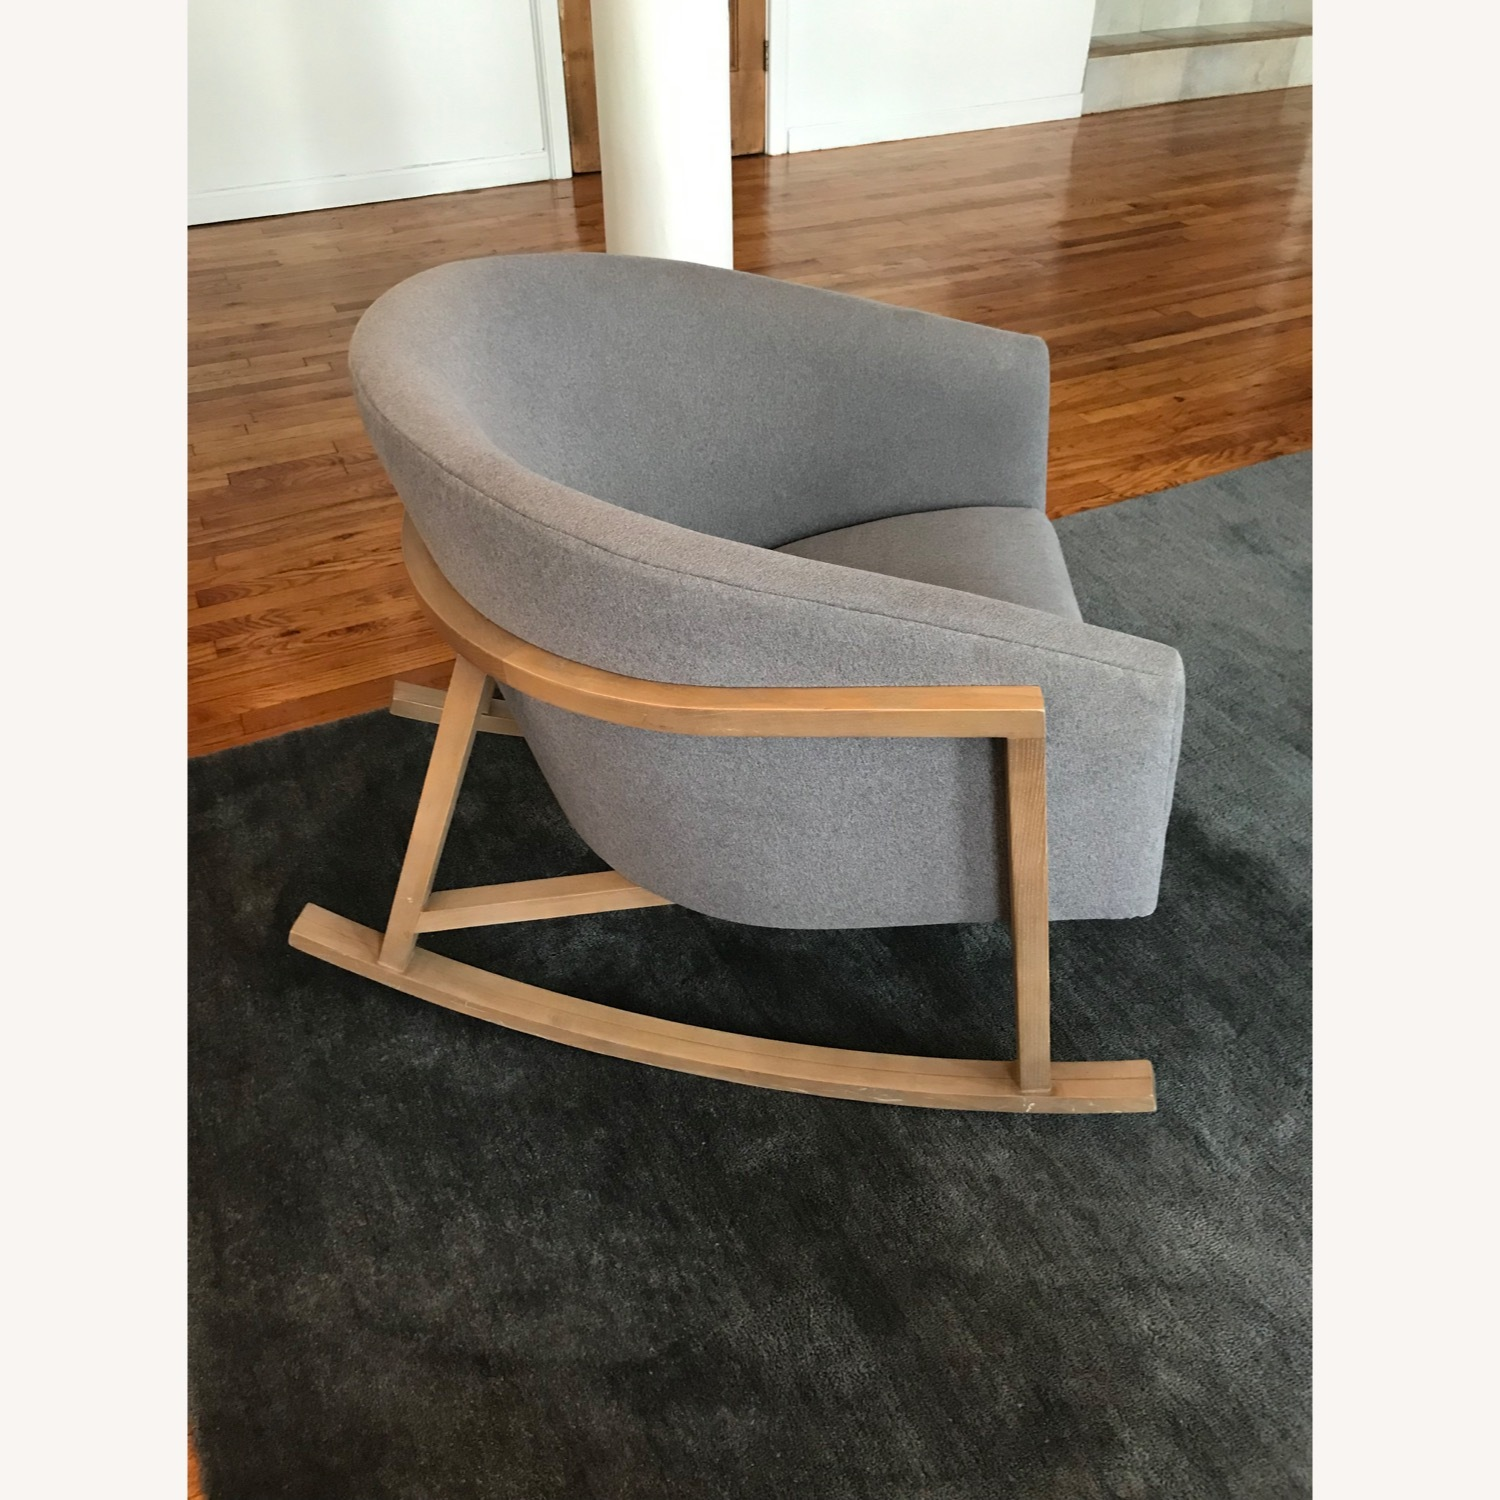 Crate & Barrel Accent Rocking Chair - image-1